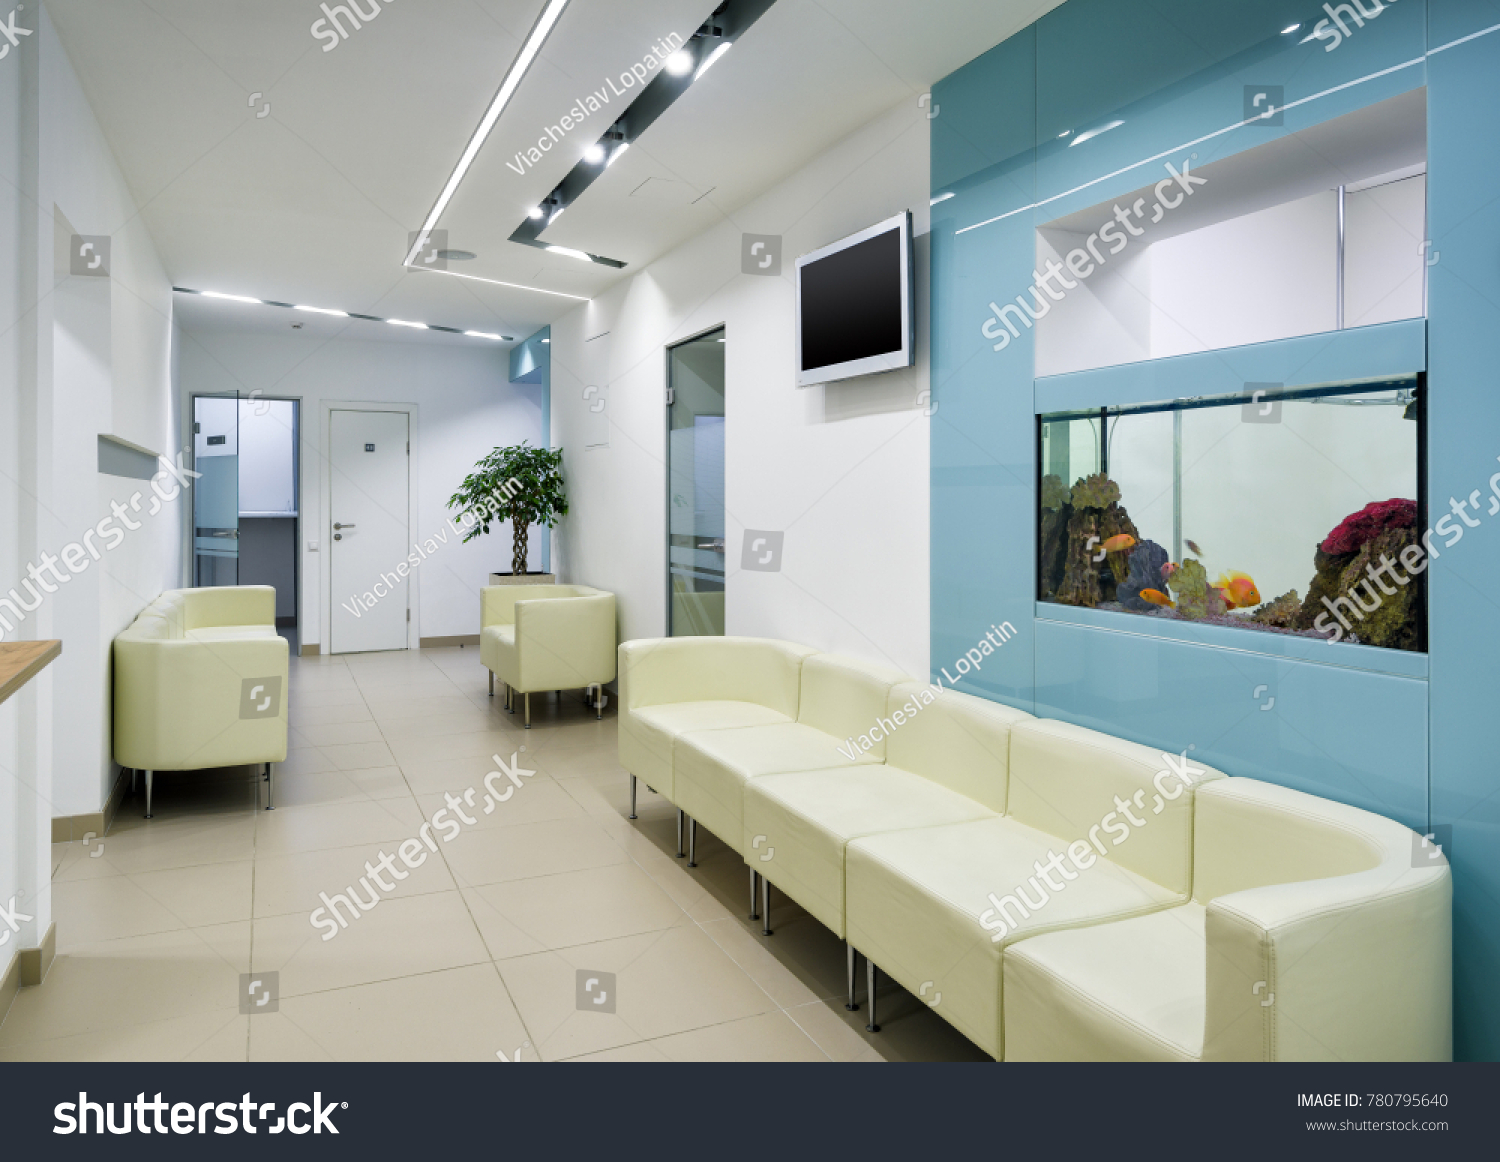 Moscow September 15 2017 Modern Clinic Stock Photo (Royalty Free ...